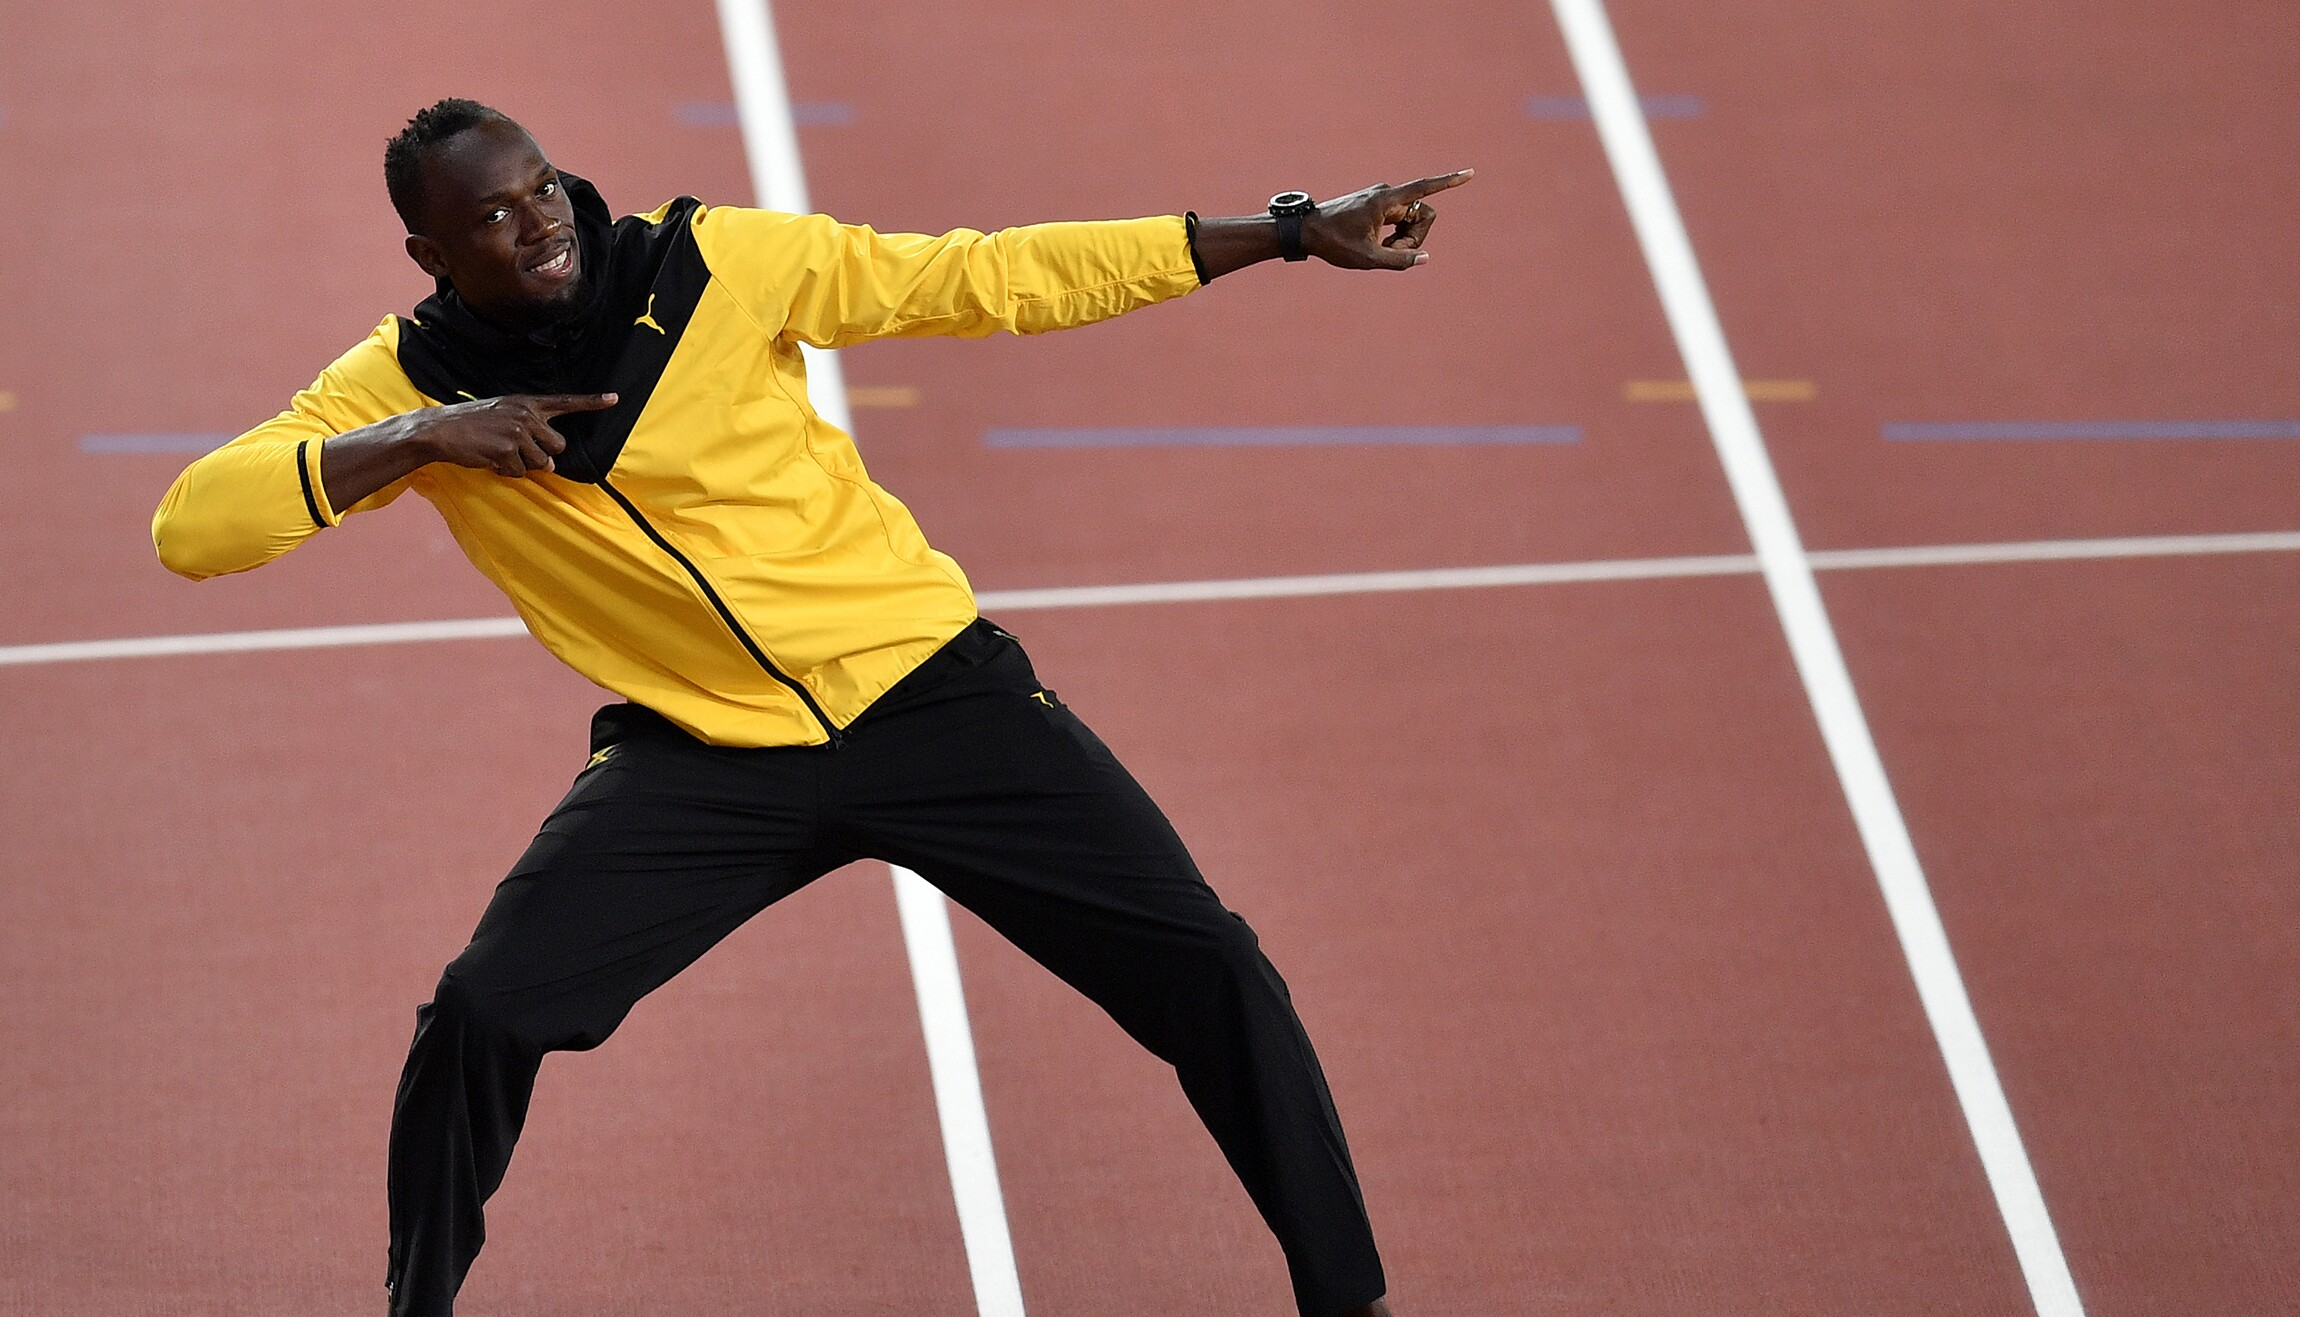 Trump Usain Bolt Showed Respect To The National Anthem